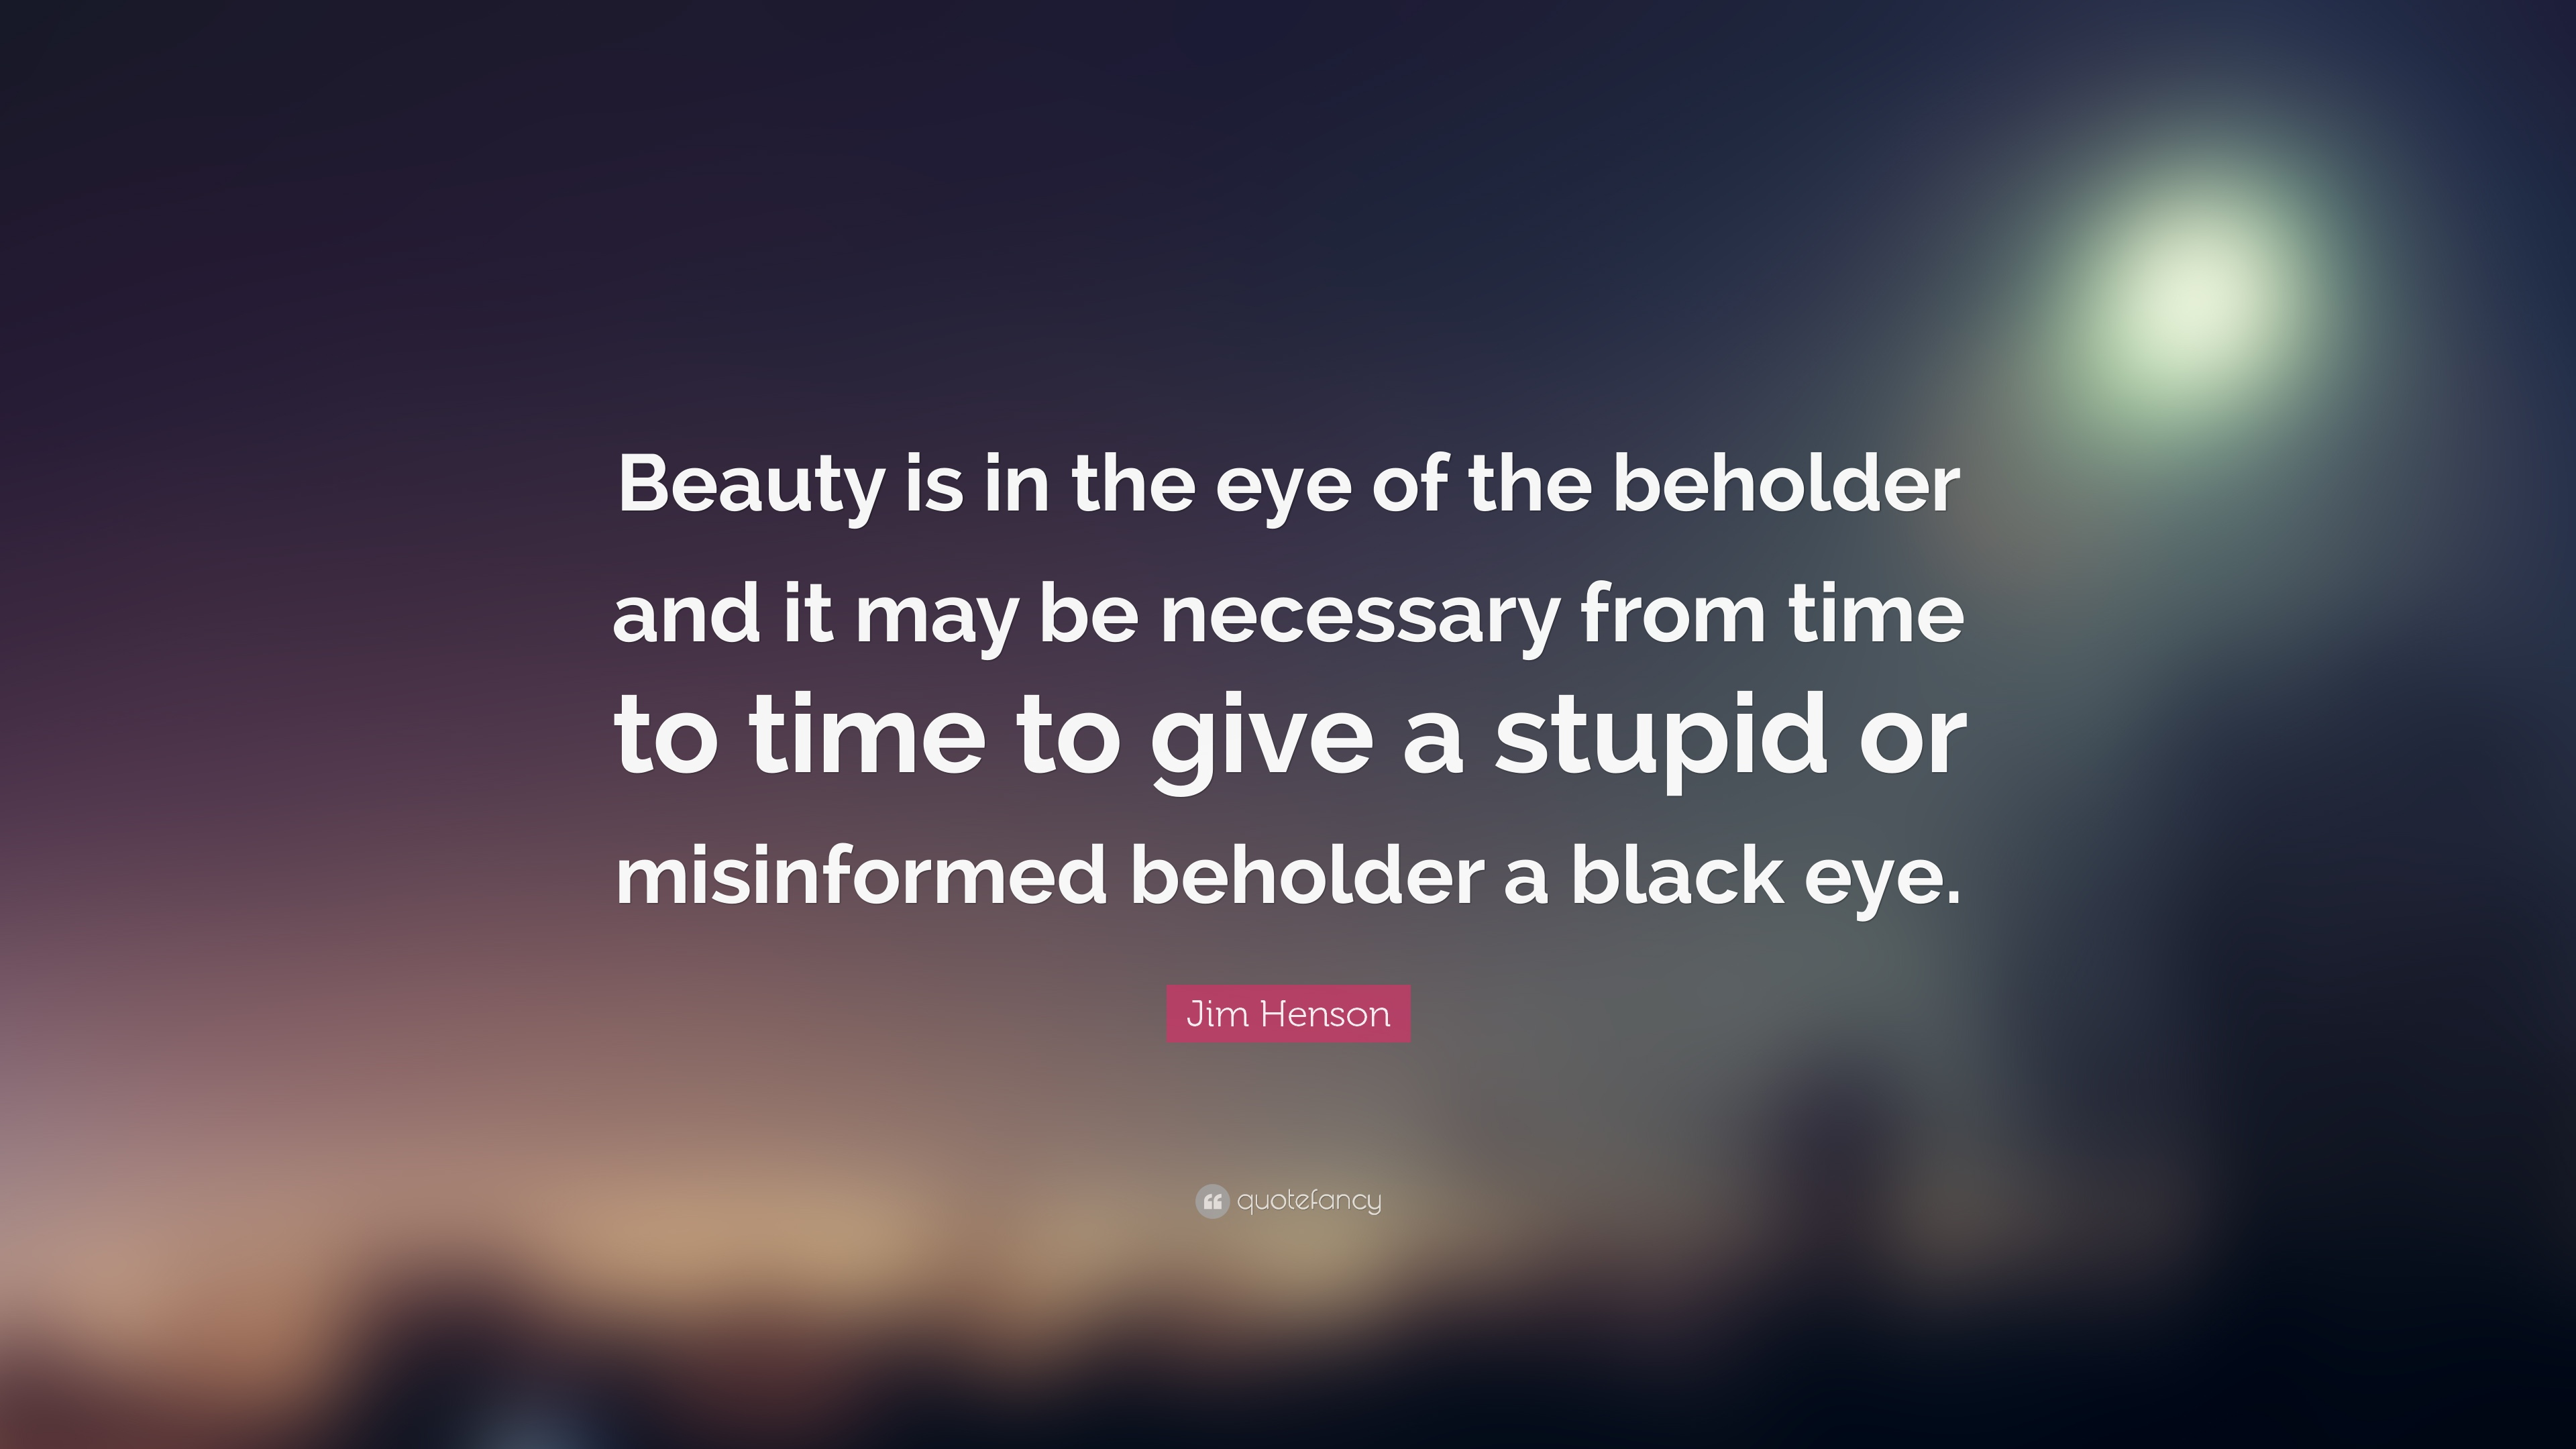 beauty eyes beholder They say beauty is in the eye of the beholder, which means that different people possess different standards of beauty and that not everyone agrees on who is beautiful and who is not.